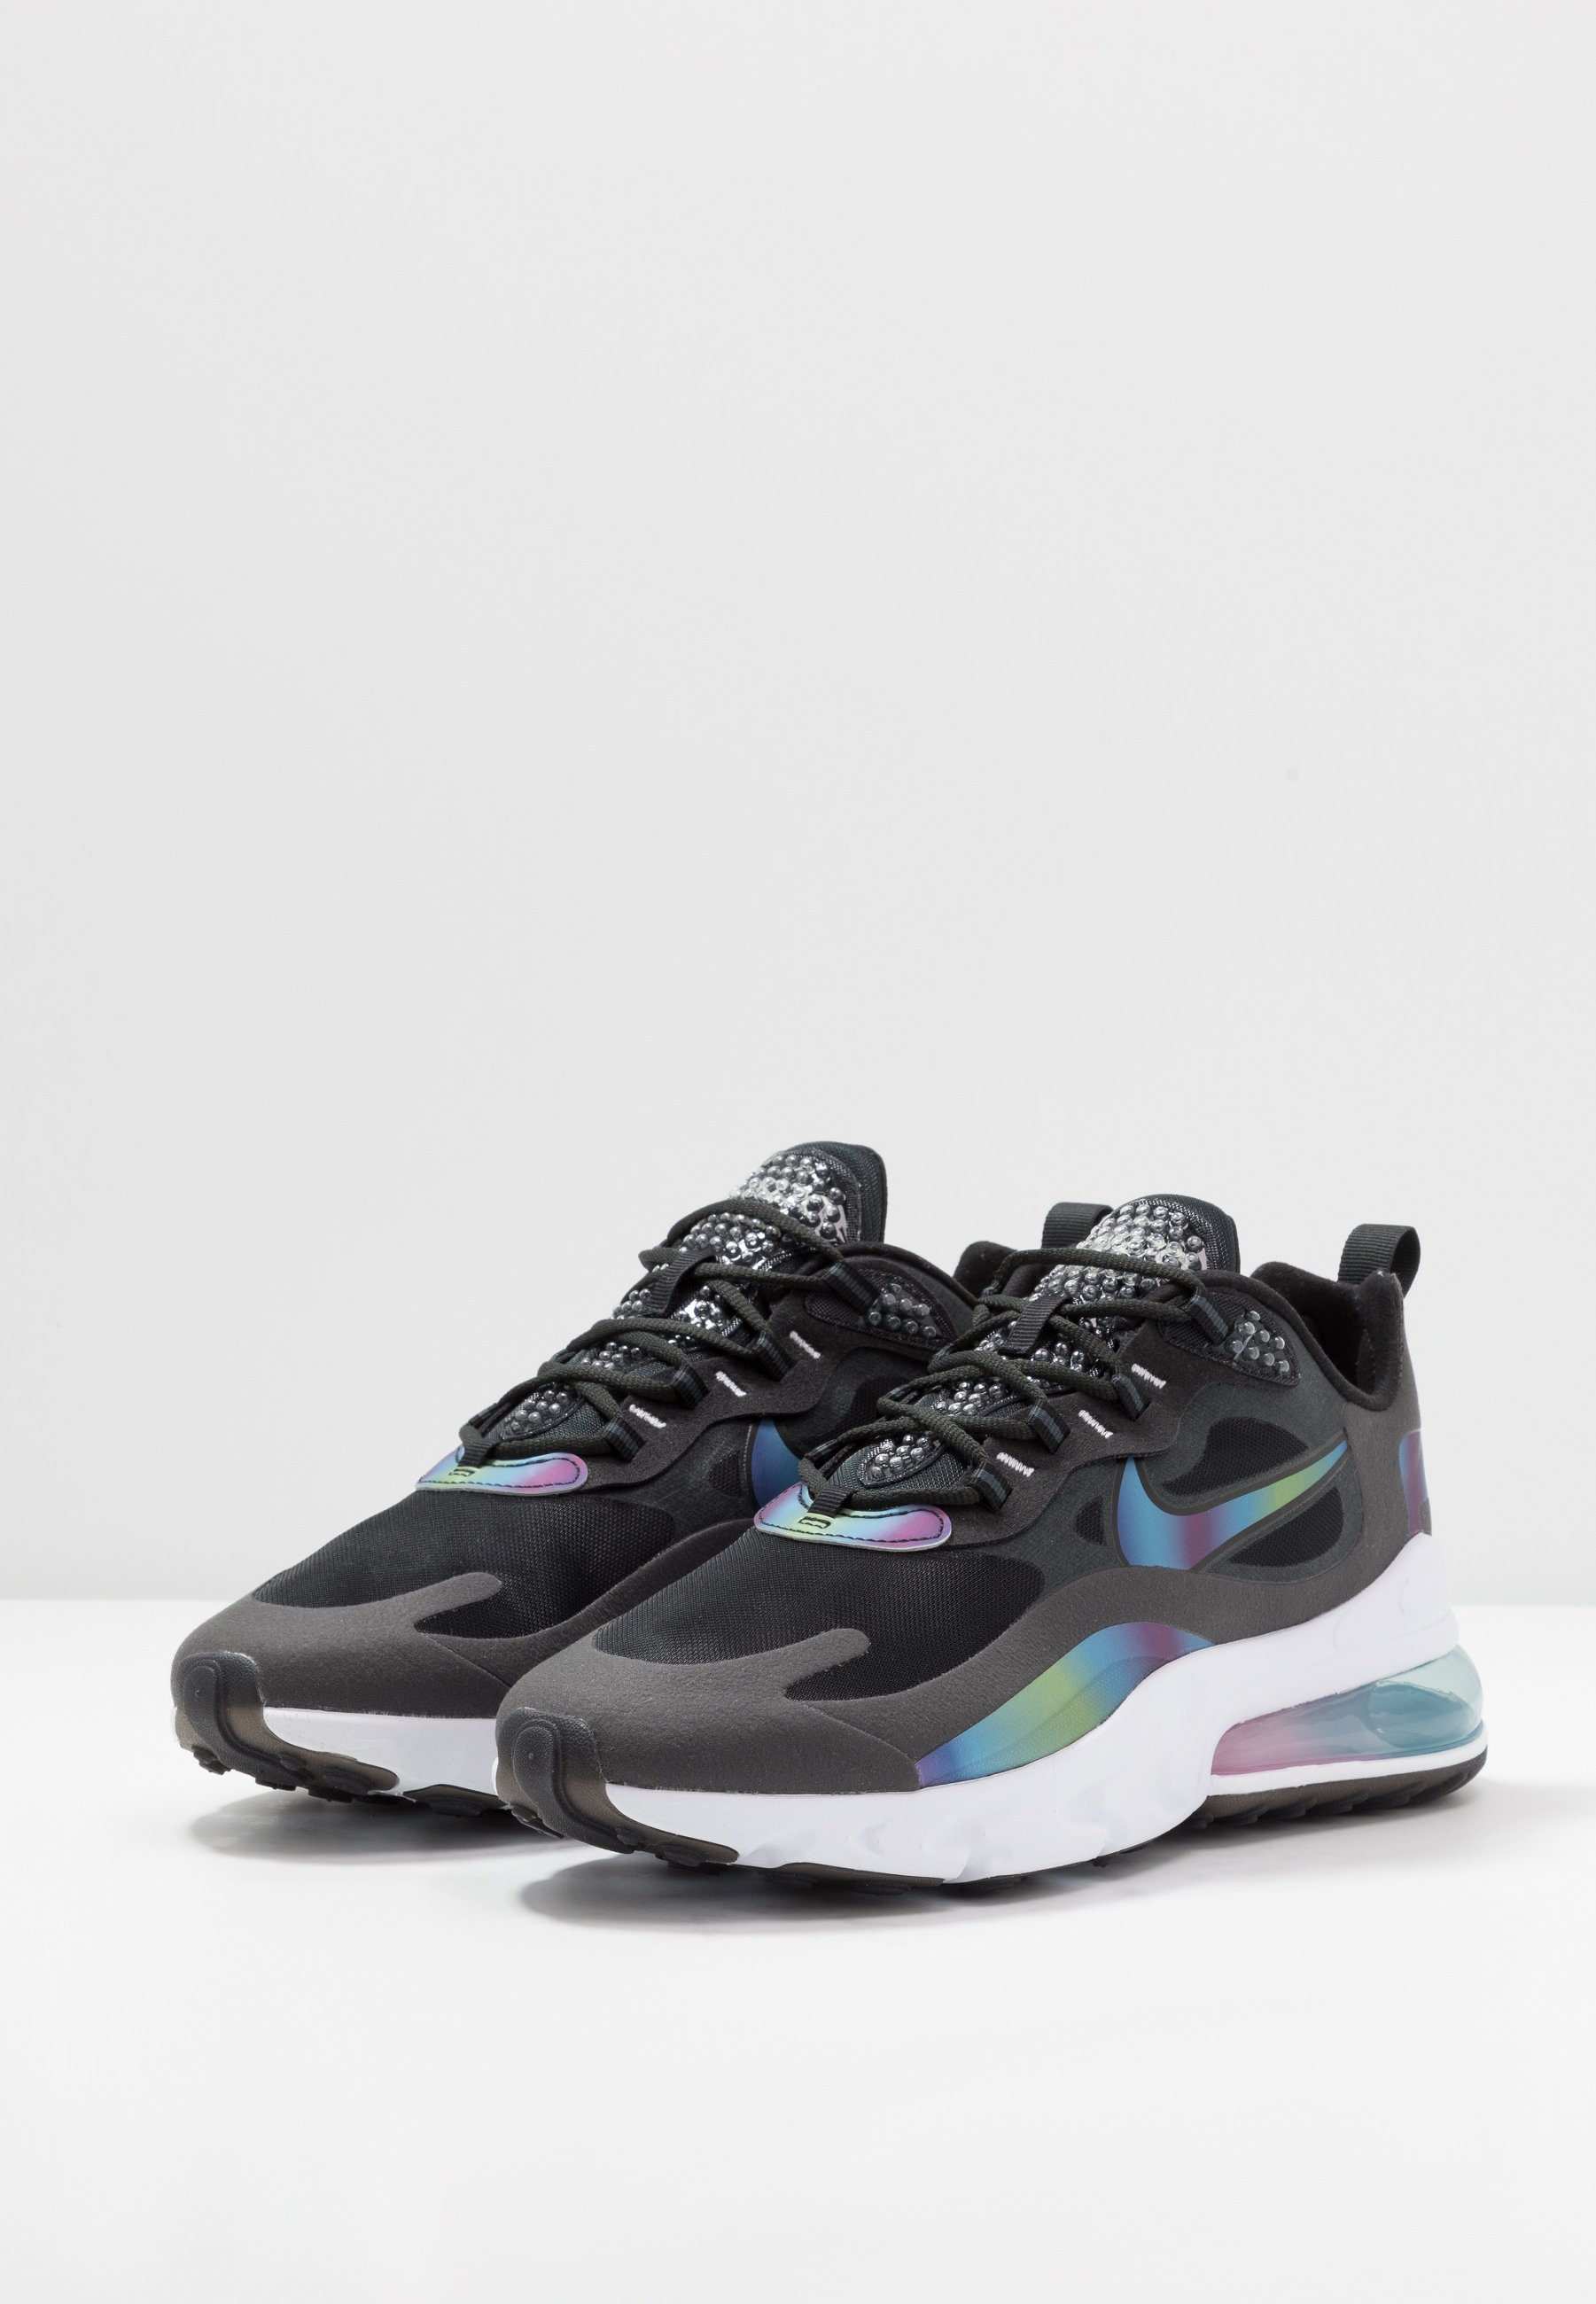 AIR MAX 270 REACT 20 Sneakers laag dark smoke greymulticolorblackwhitemetallic silver